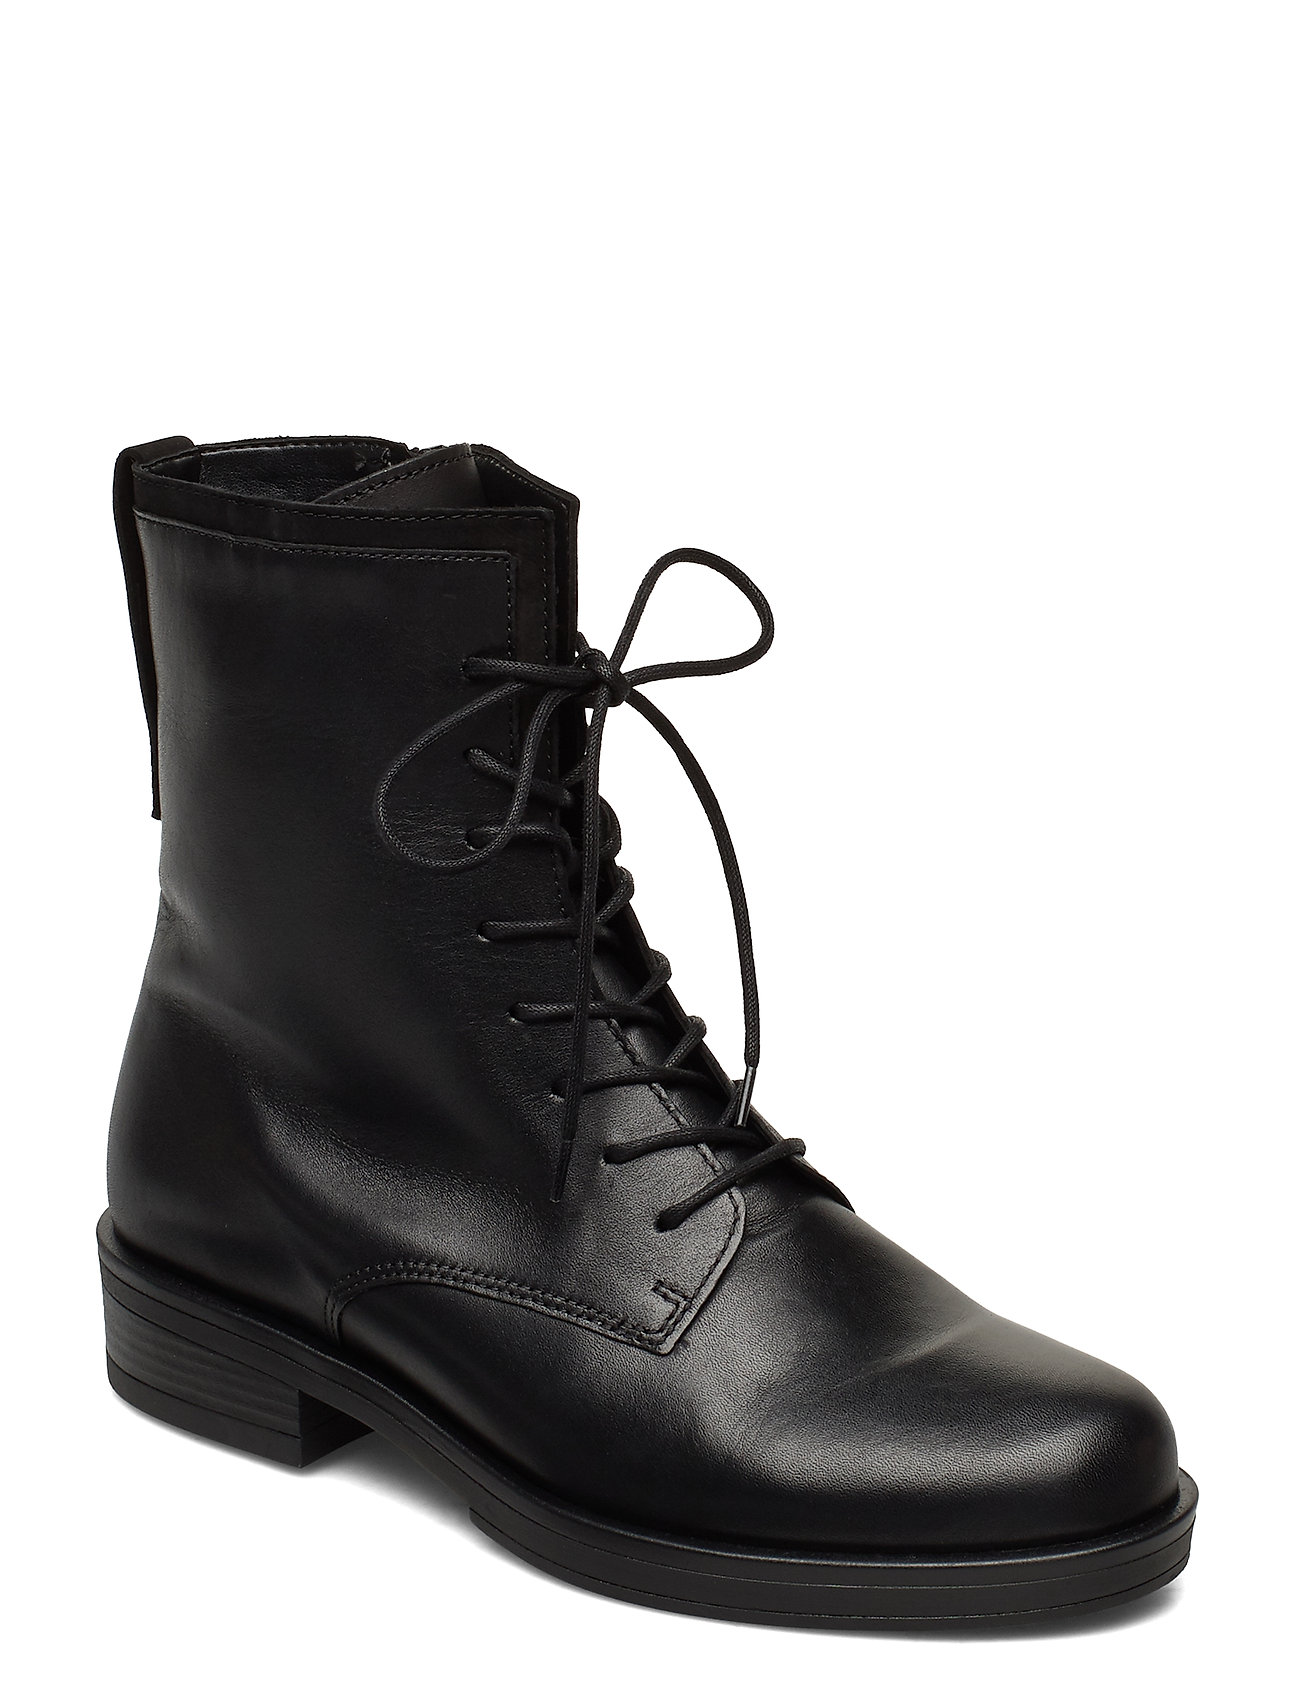 Image of Ankle Boot Shoes Boots Ankle Boots Ankle Boot - Flat Sort Gabor (3435437159)